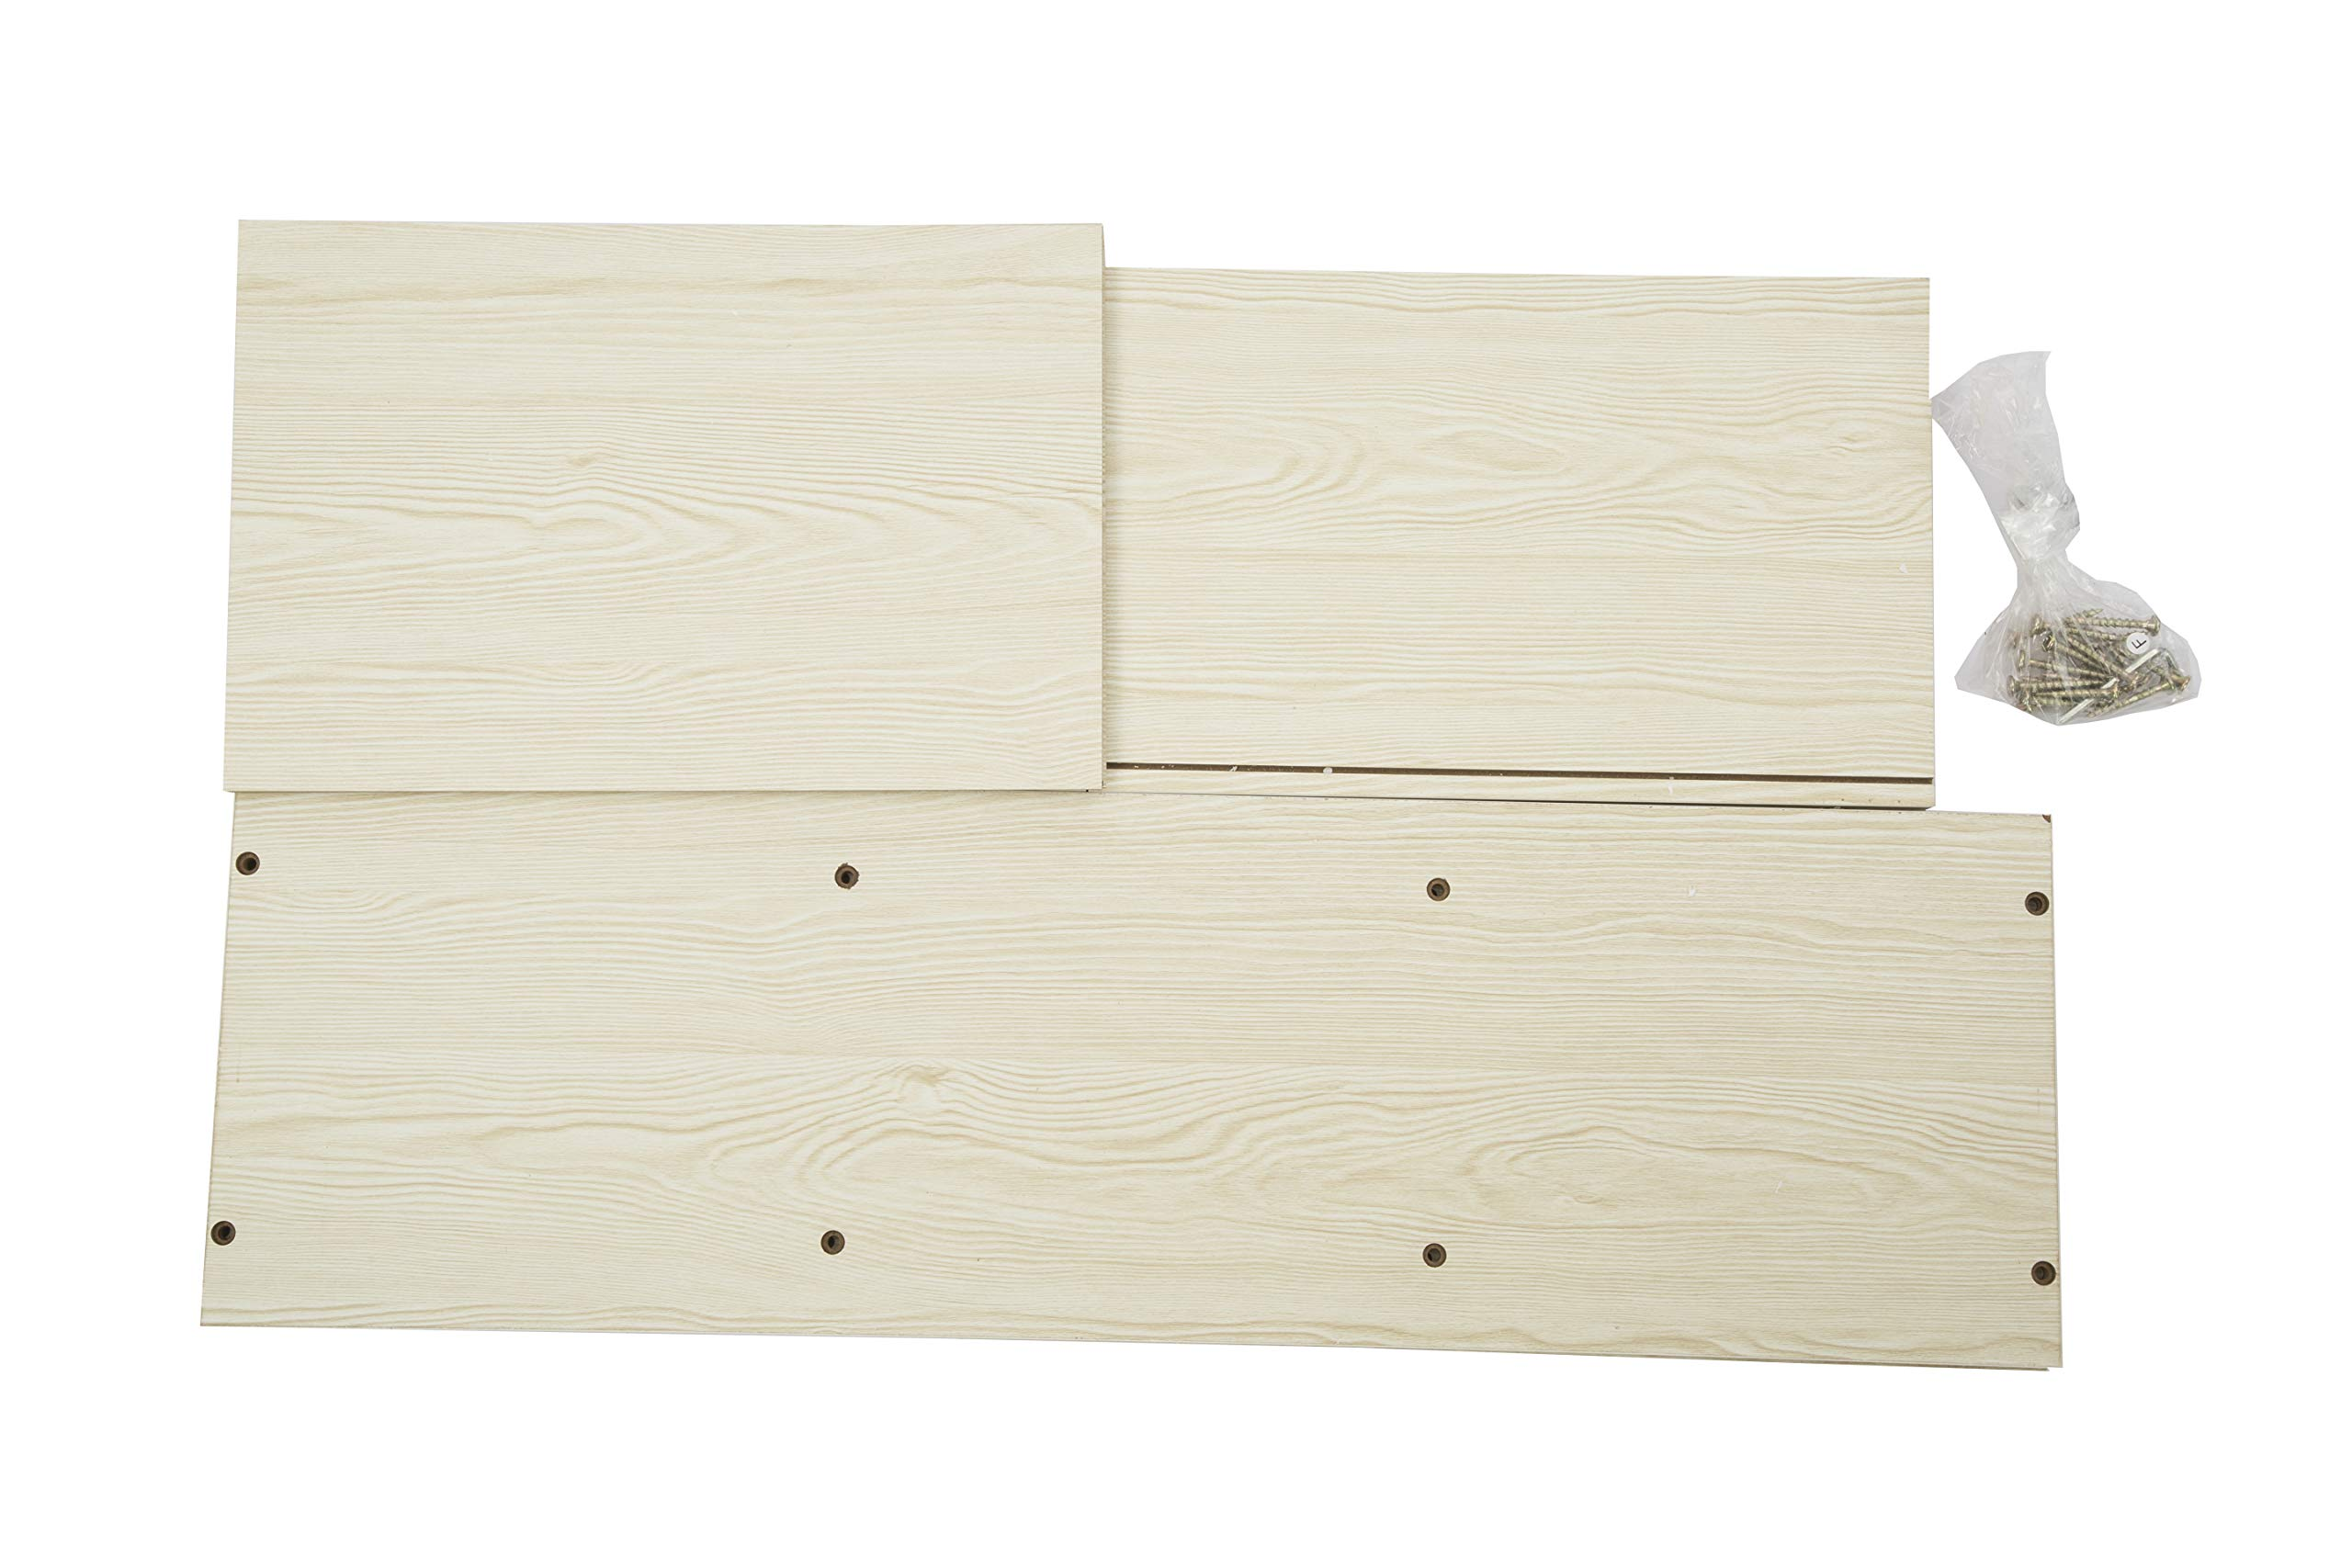 JEROAL 3-Shelf Wooden Bookshelf, 3 Cube Storage Organizer, Display Bookshelf Storage Organizer for Books, Pictures, Decorations, White Oak by JEROAL (Image #6)